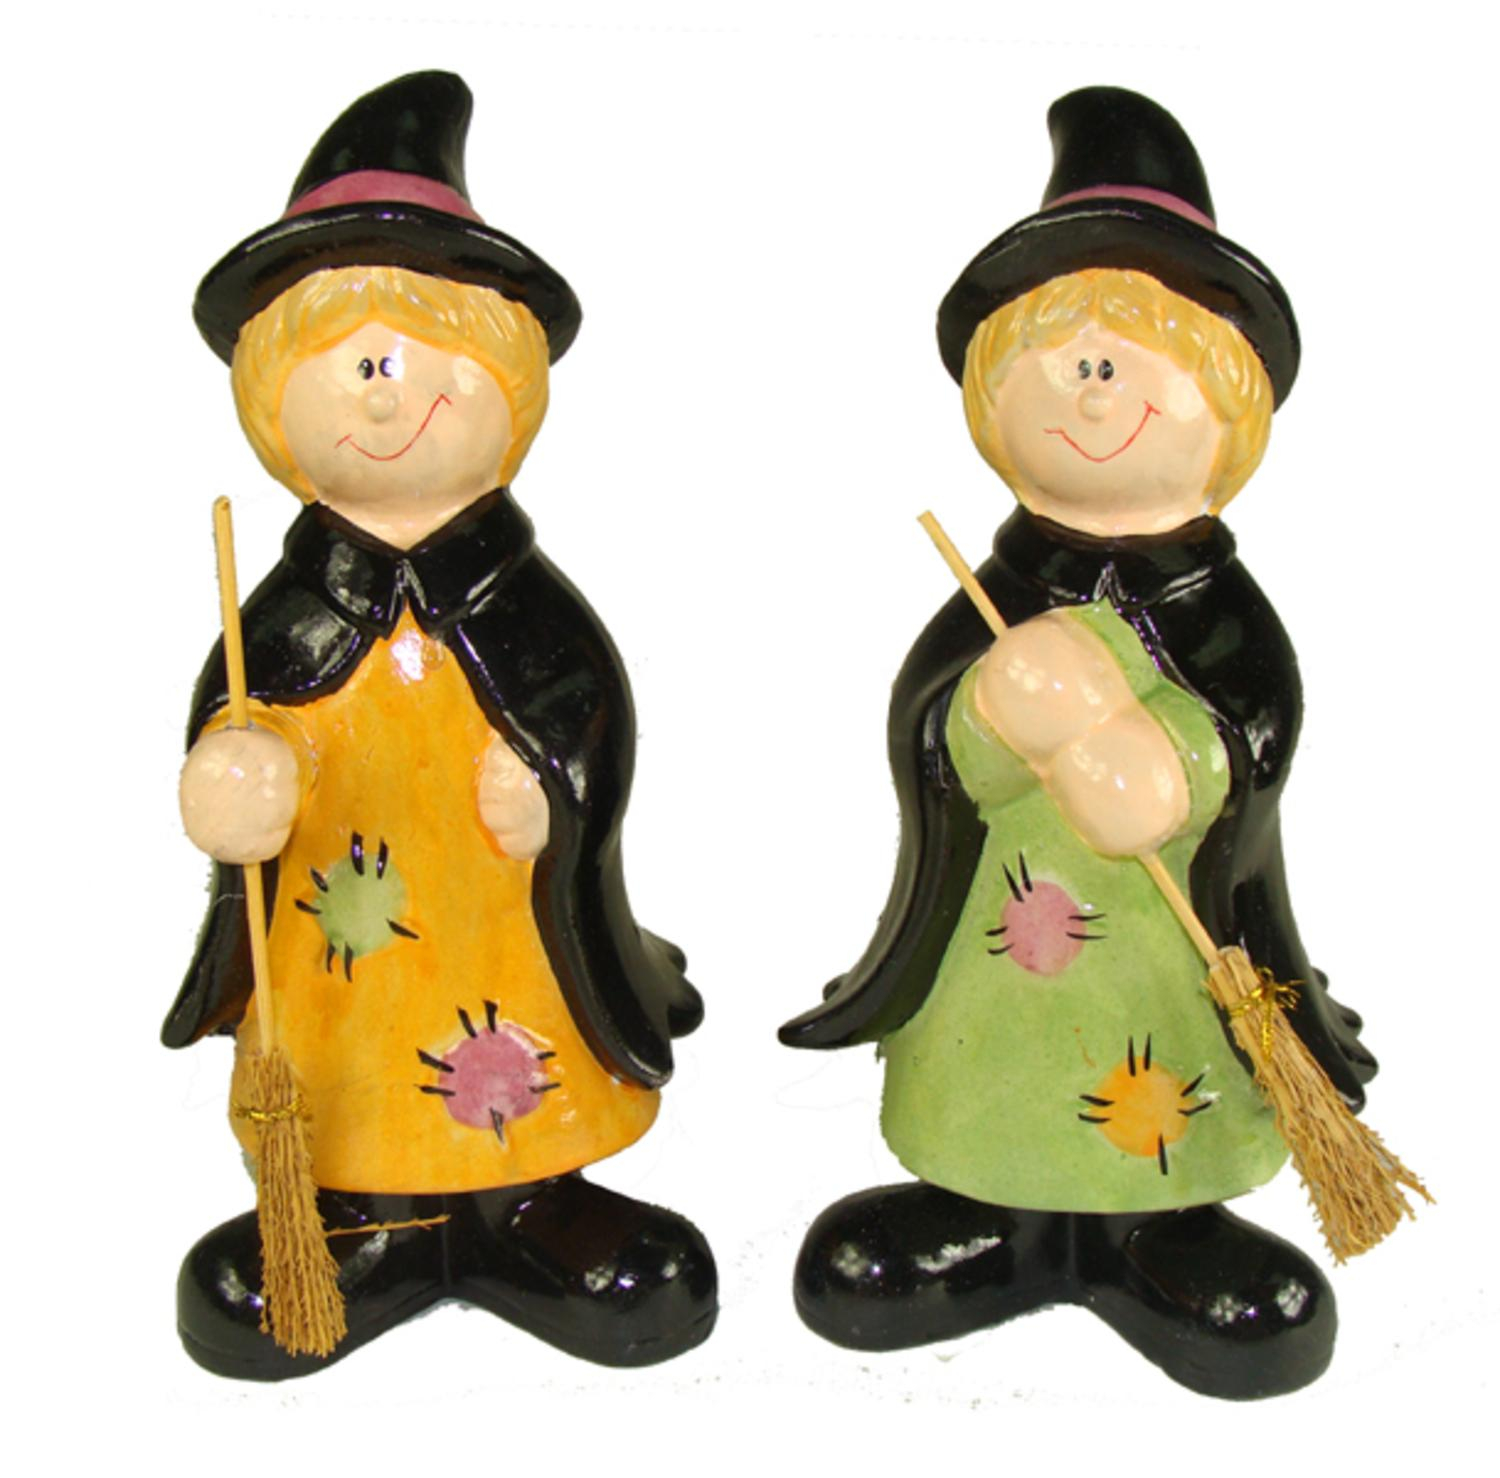 ''Club Pack of 36 Friendly Halloween Witch Table Top Figurines 8''''''